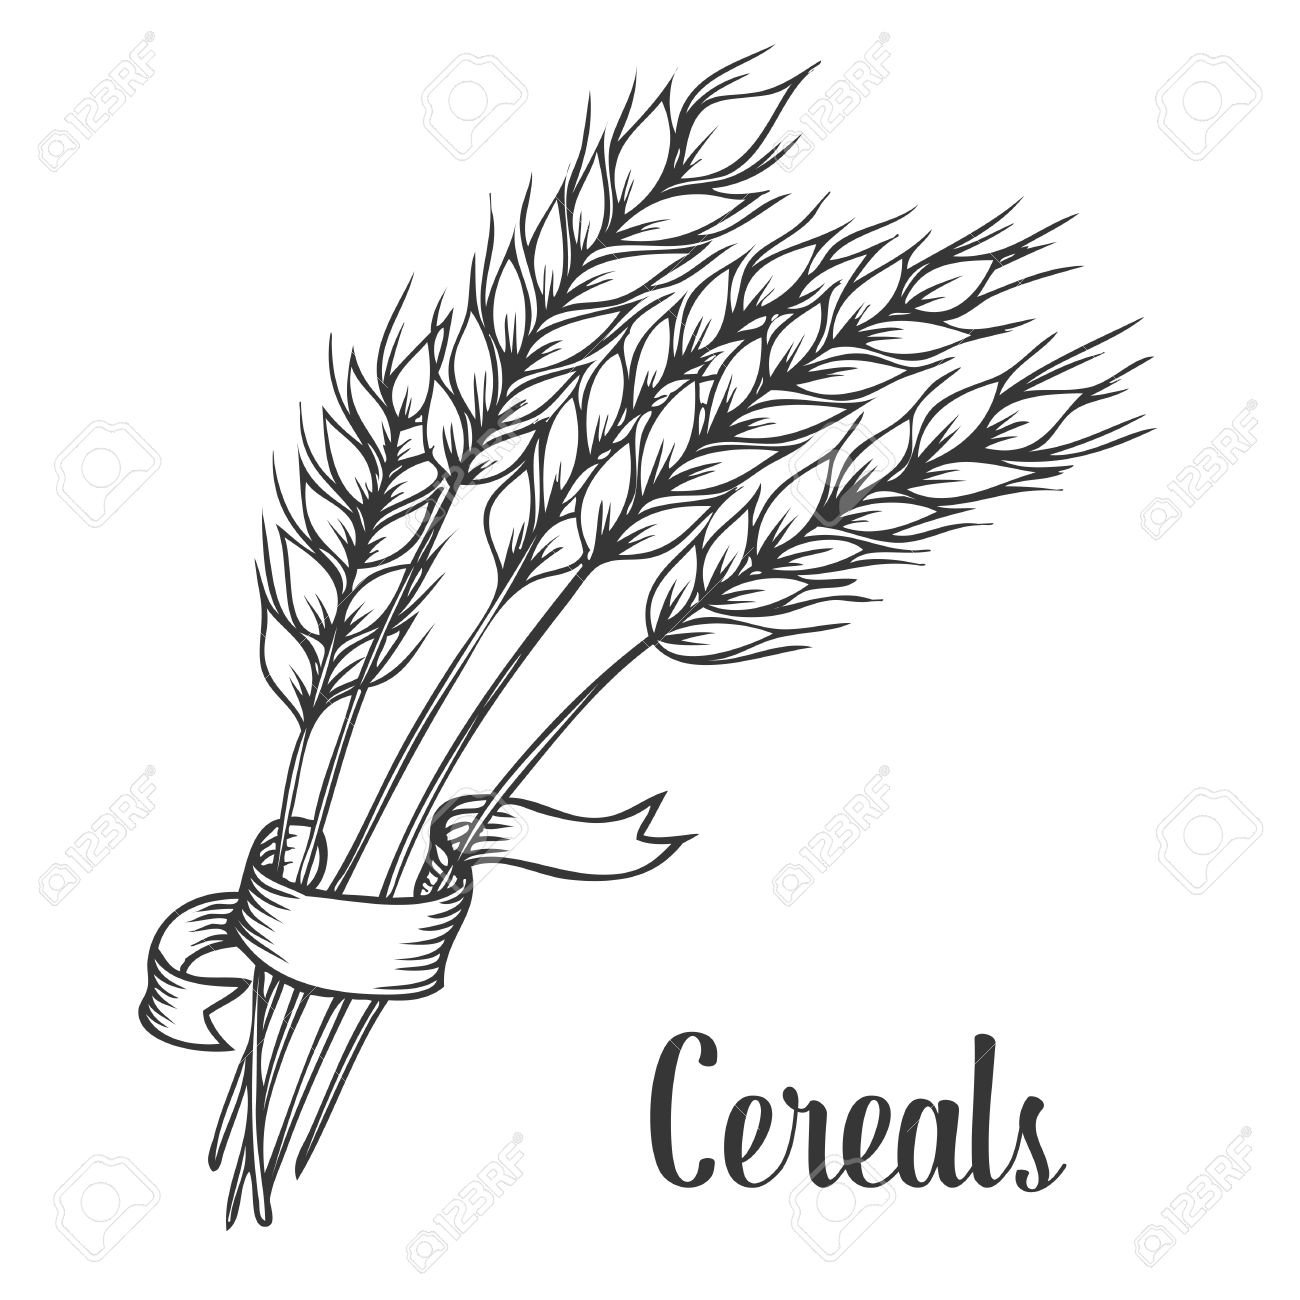 1300x1300 Wheat Bread Ears Cereal Crop With Ribbon Sketch Decorative Icons